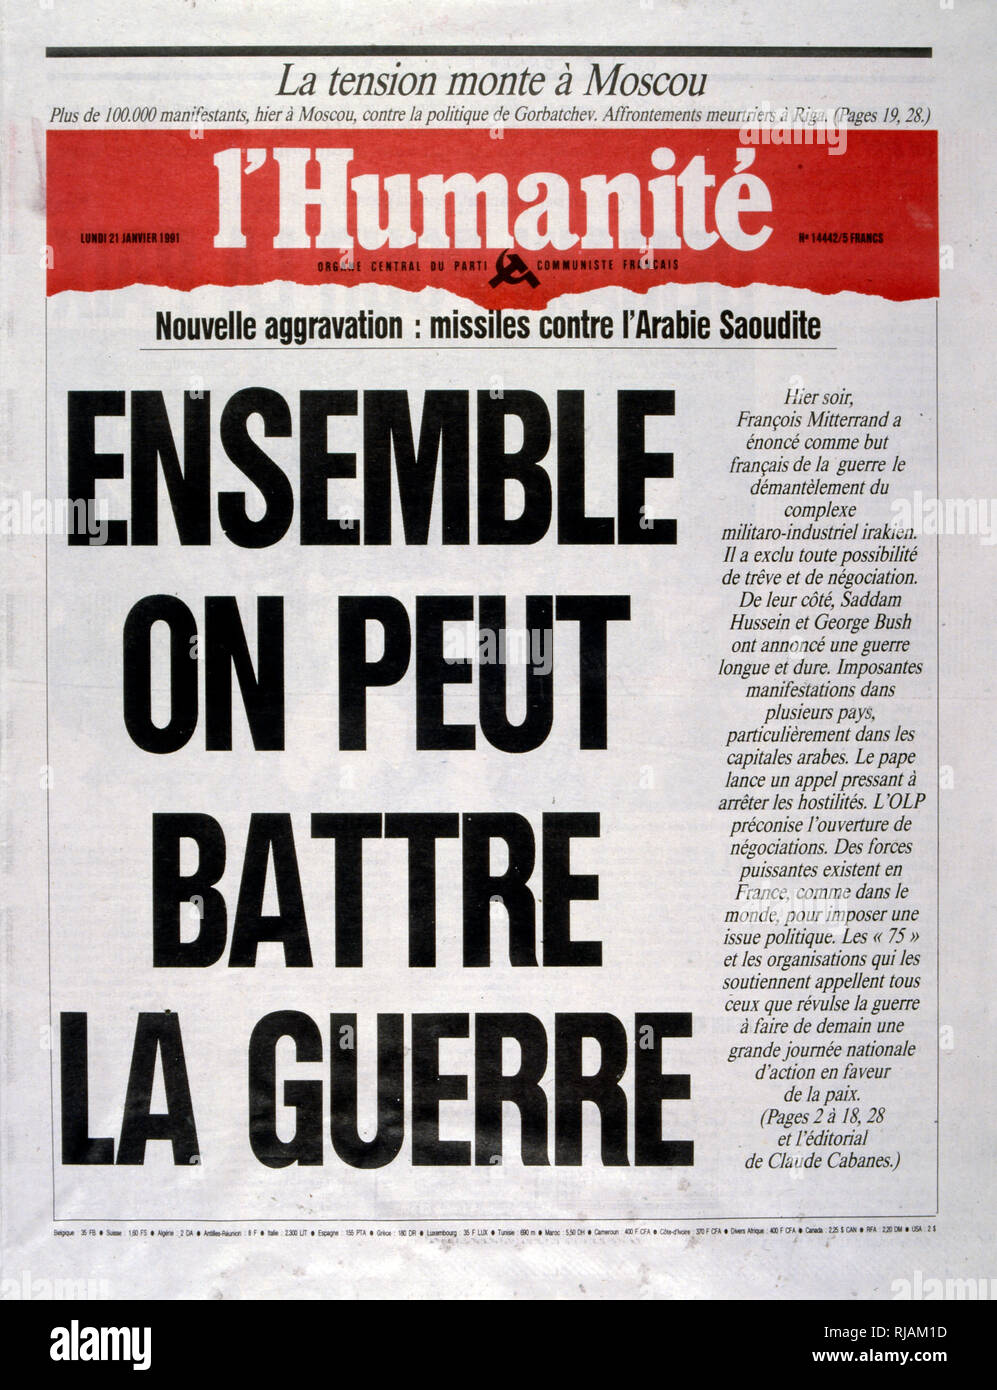 Headline in 'l'Humanite' a French left wing, newspaper, 21st January 1991, calling for protest against the escalating action in the Gulf War (2 August 1990 - 28 February 1991). codenamed Operation Desert Shield and Operation Desert Storm, the war waged by coalition forces from 35 nations led by the United States against Iraq in response to Iraq's invasion and annexation of Kuwait. - Stock Image